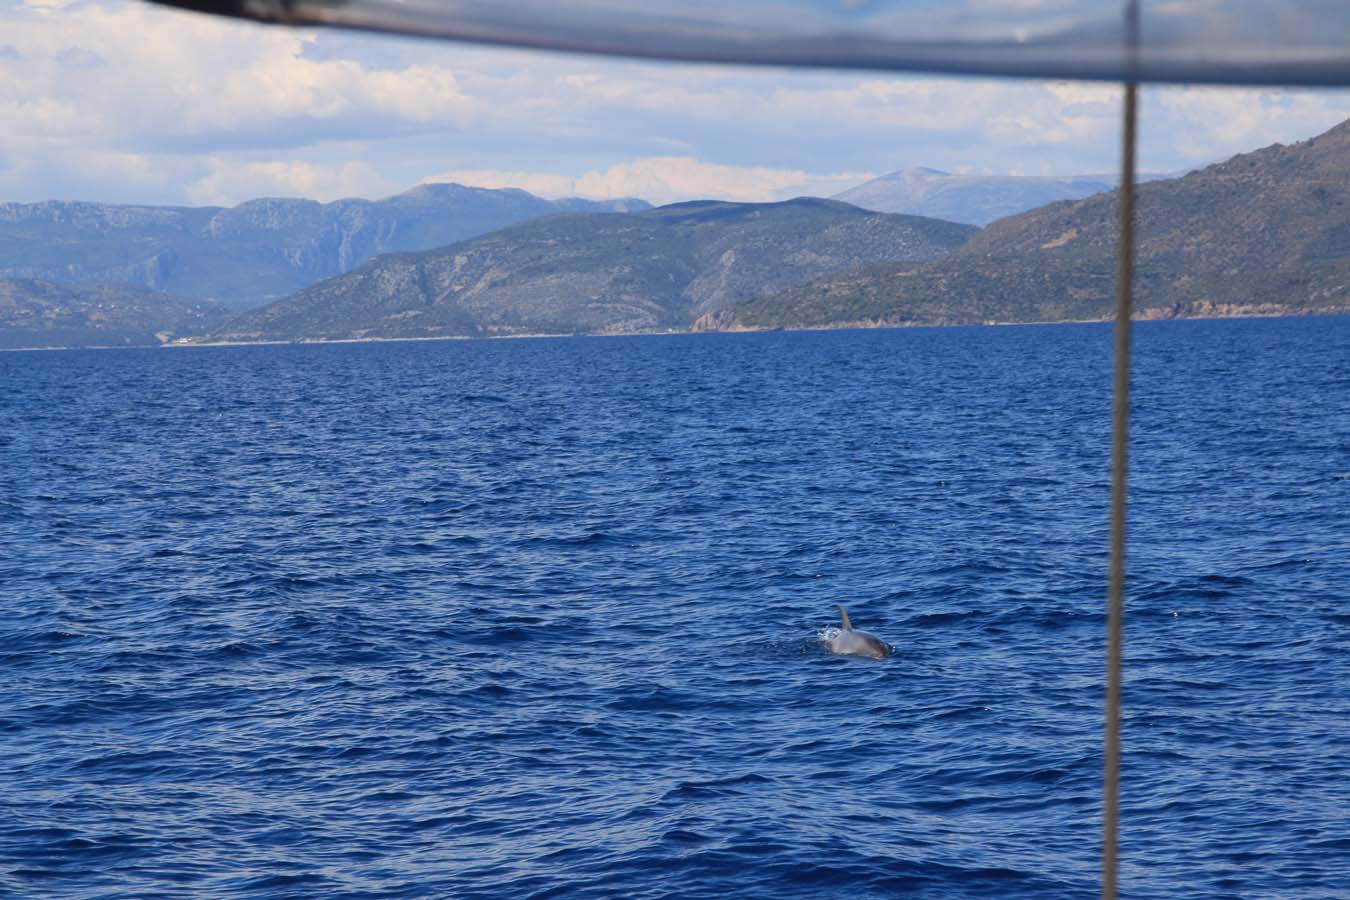 Sailing in Greece. Dolphins Spotting.